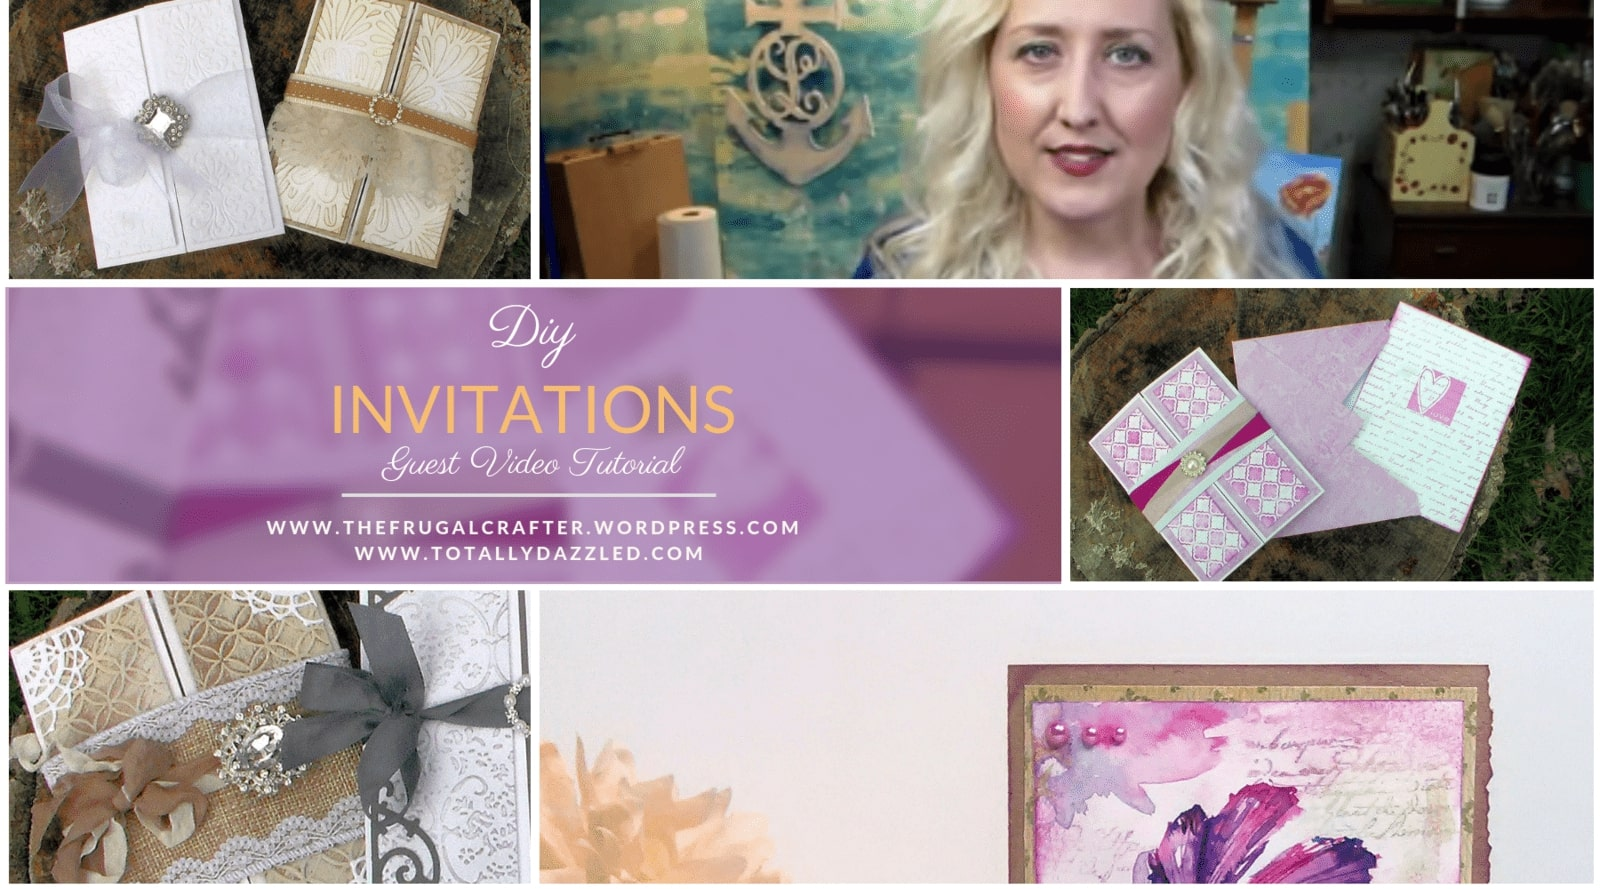 Wedding Invitations DIY with the Frugal Crafter